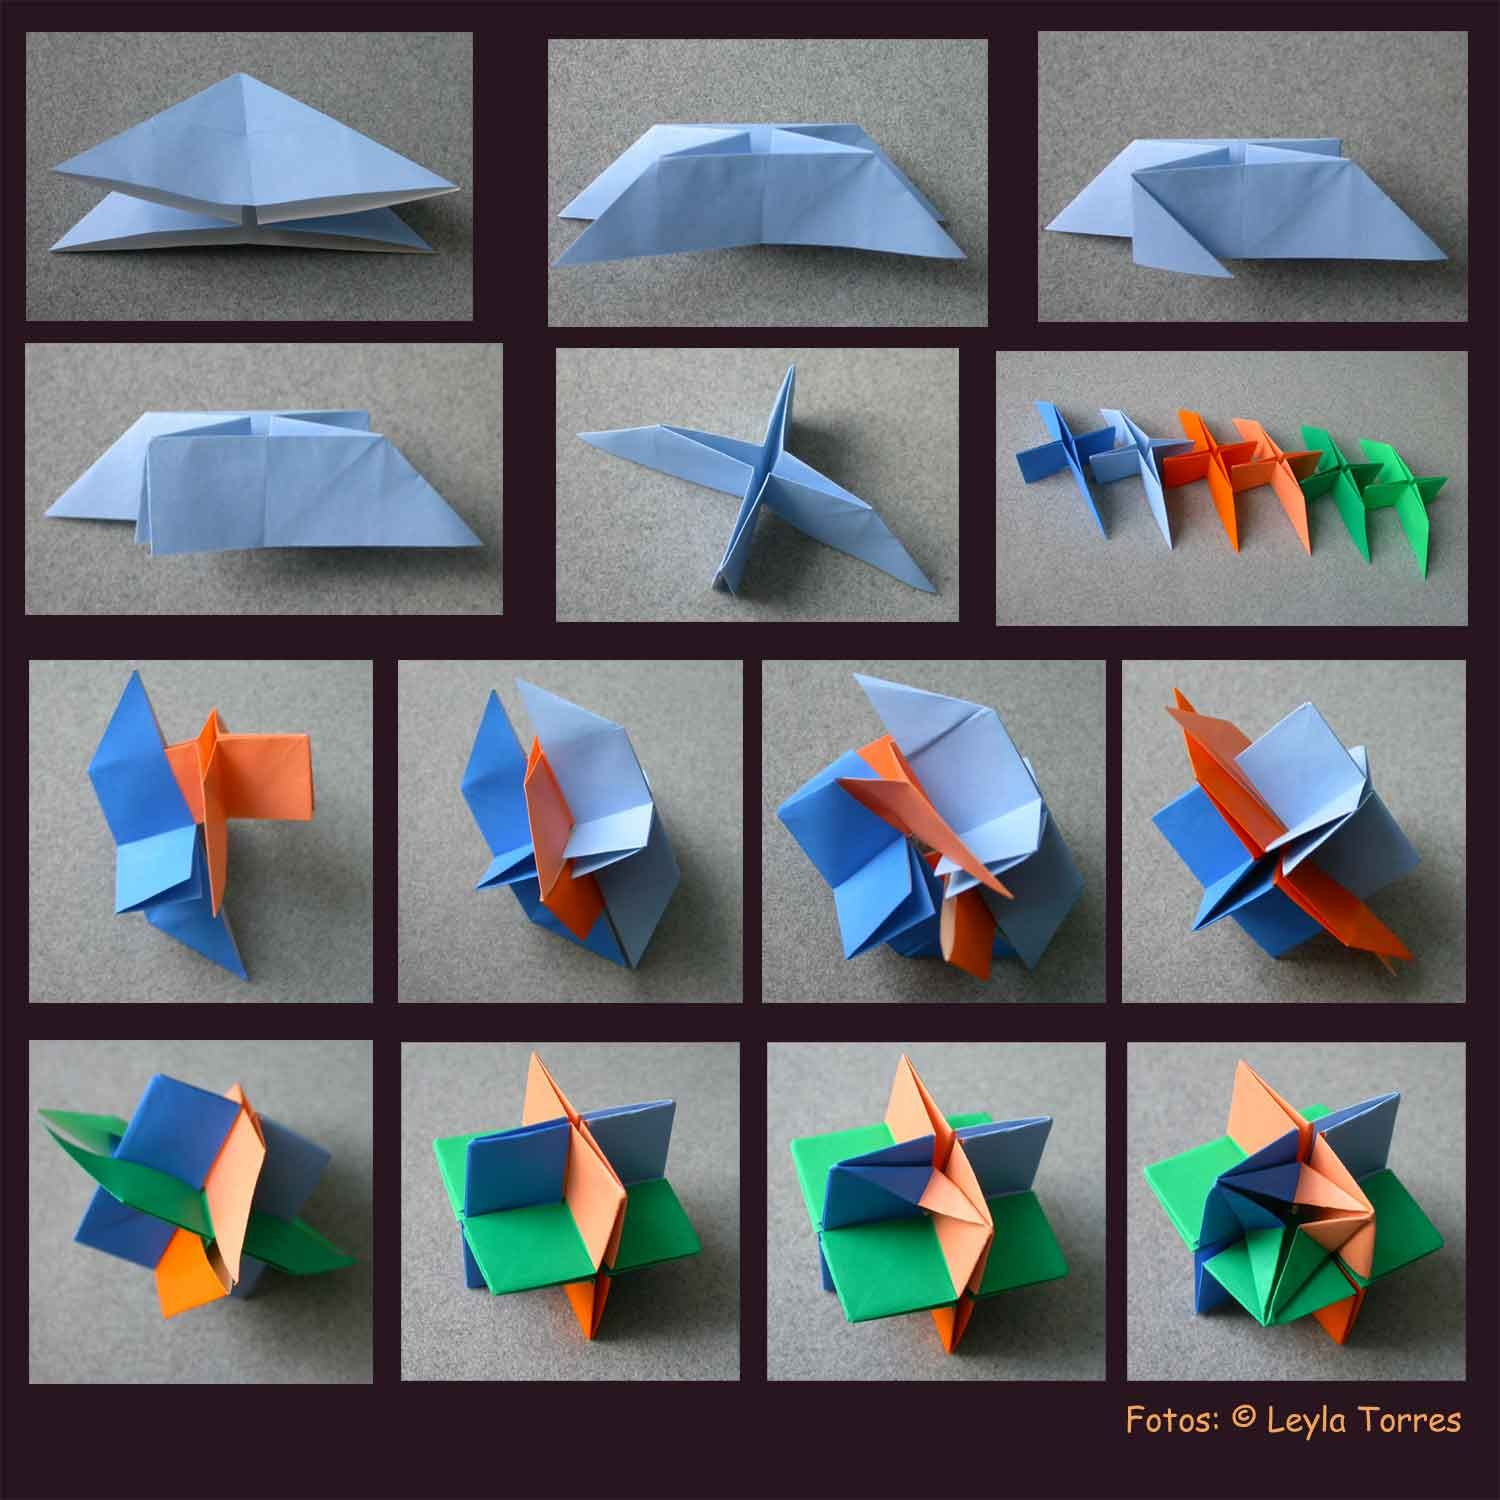 How to make flower origami step by step images craft decoration origami omega star by philip shen learn how to make origami stars using one piece of jeuxipadfo Gallery